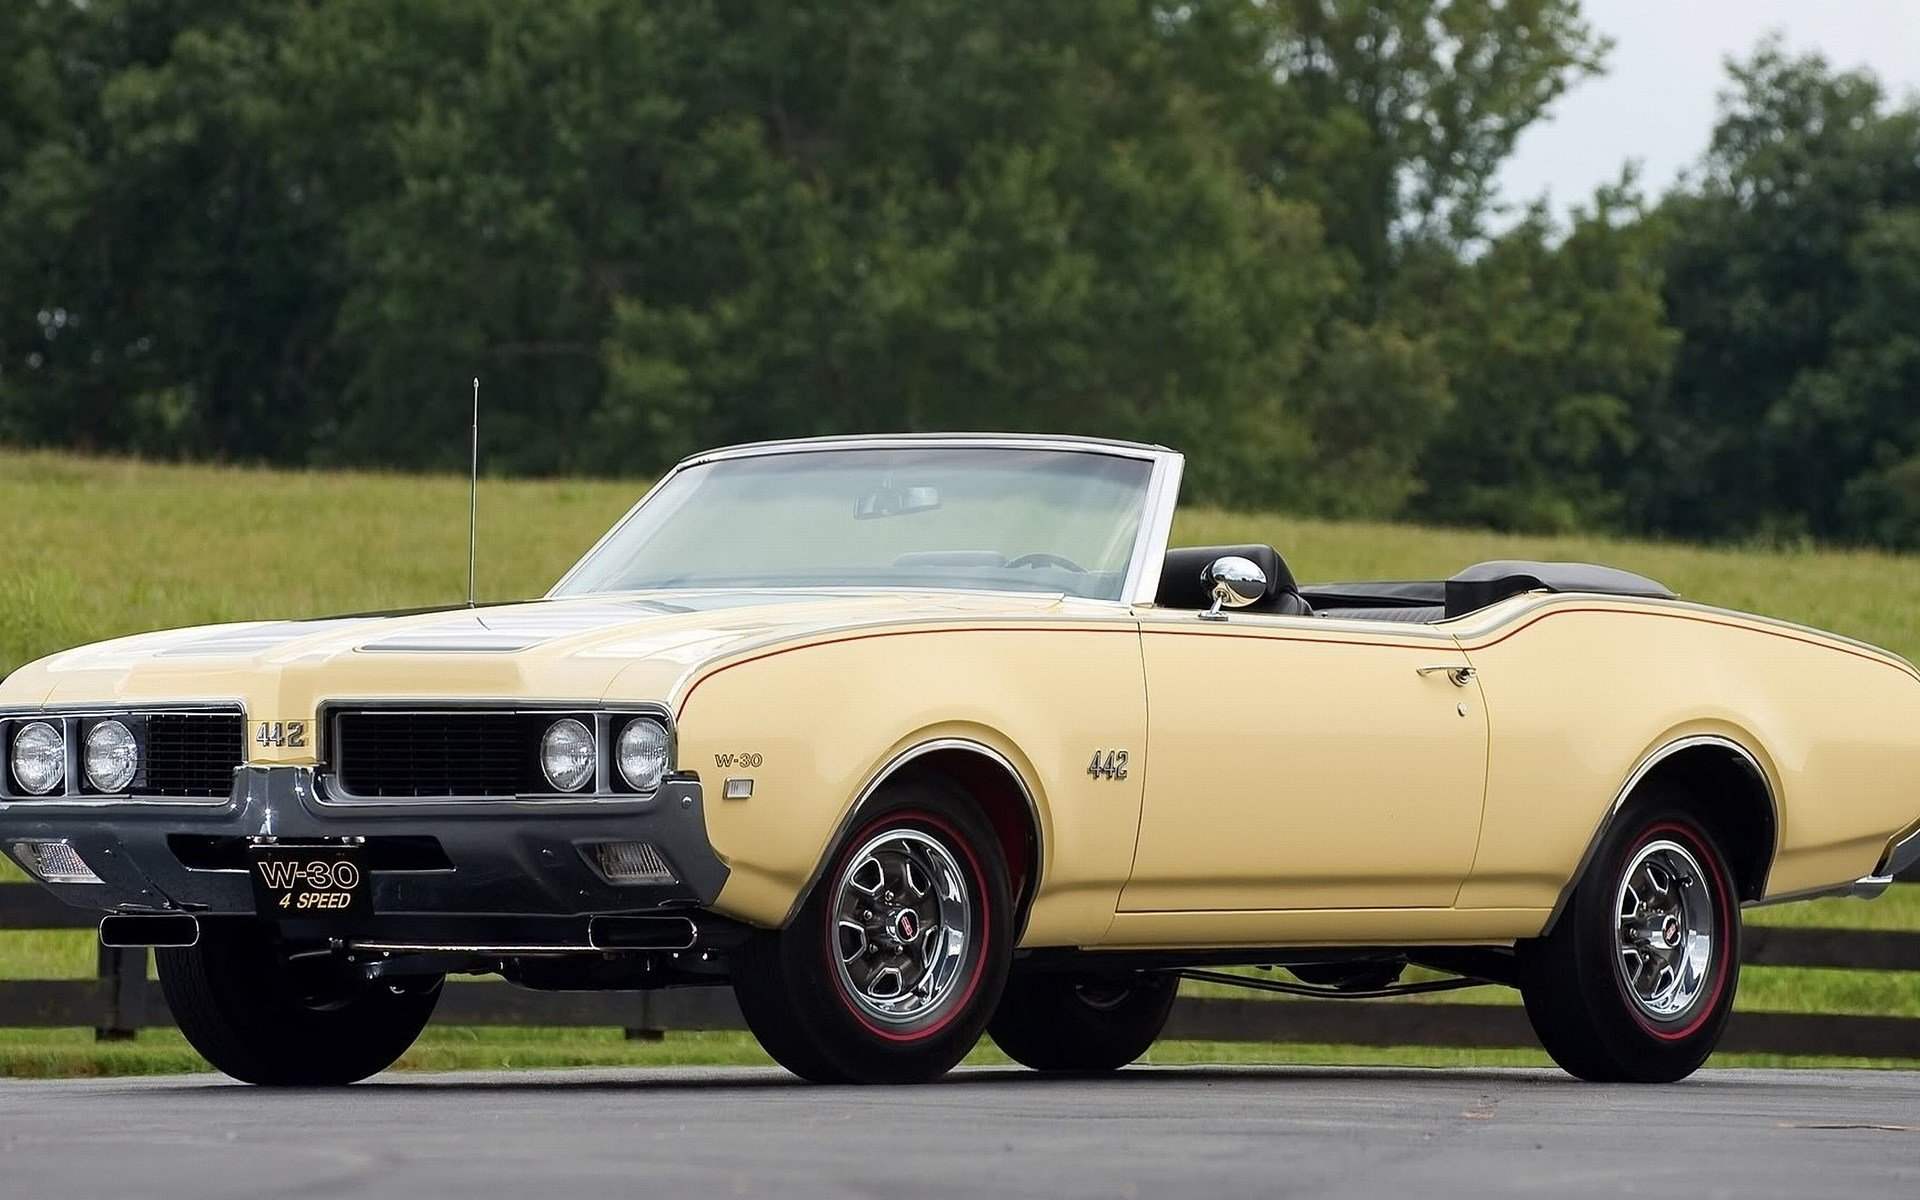 Latest 1969 Oldsmobile 442 Wallpaper 27661 Free Download